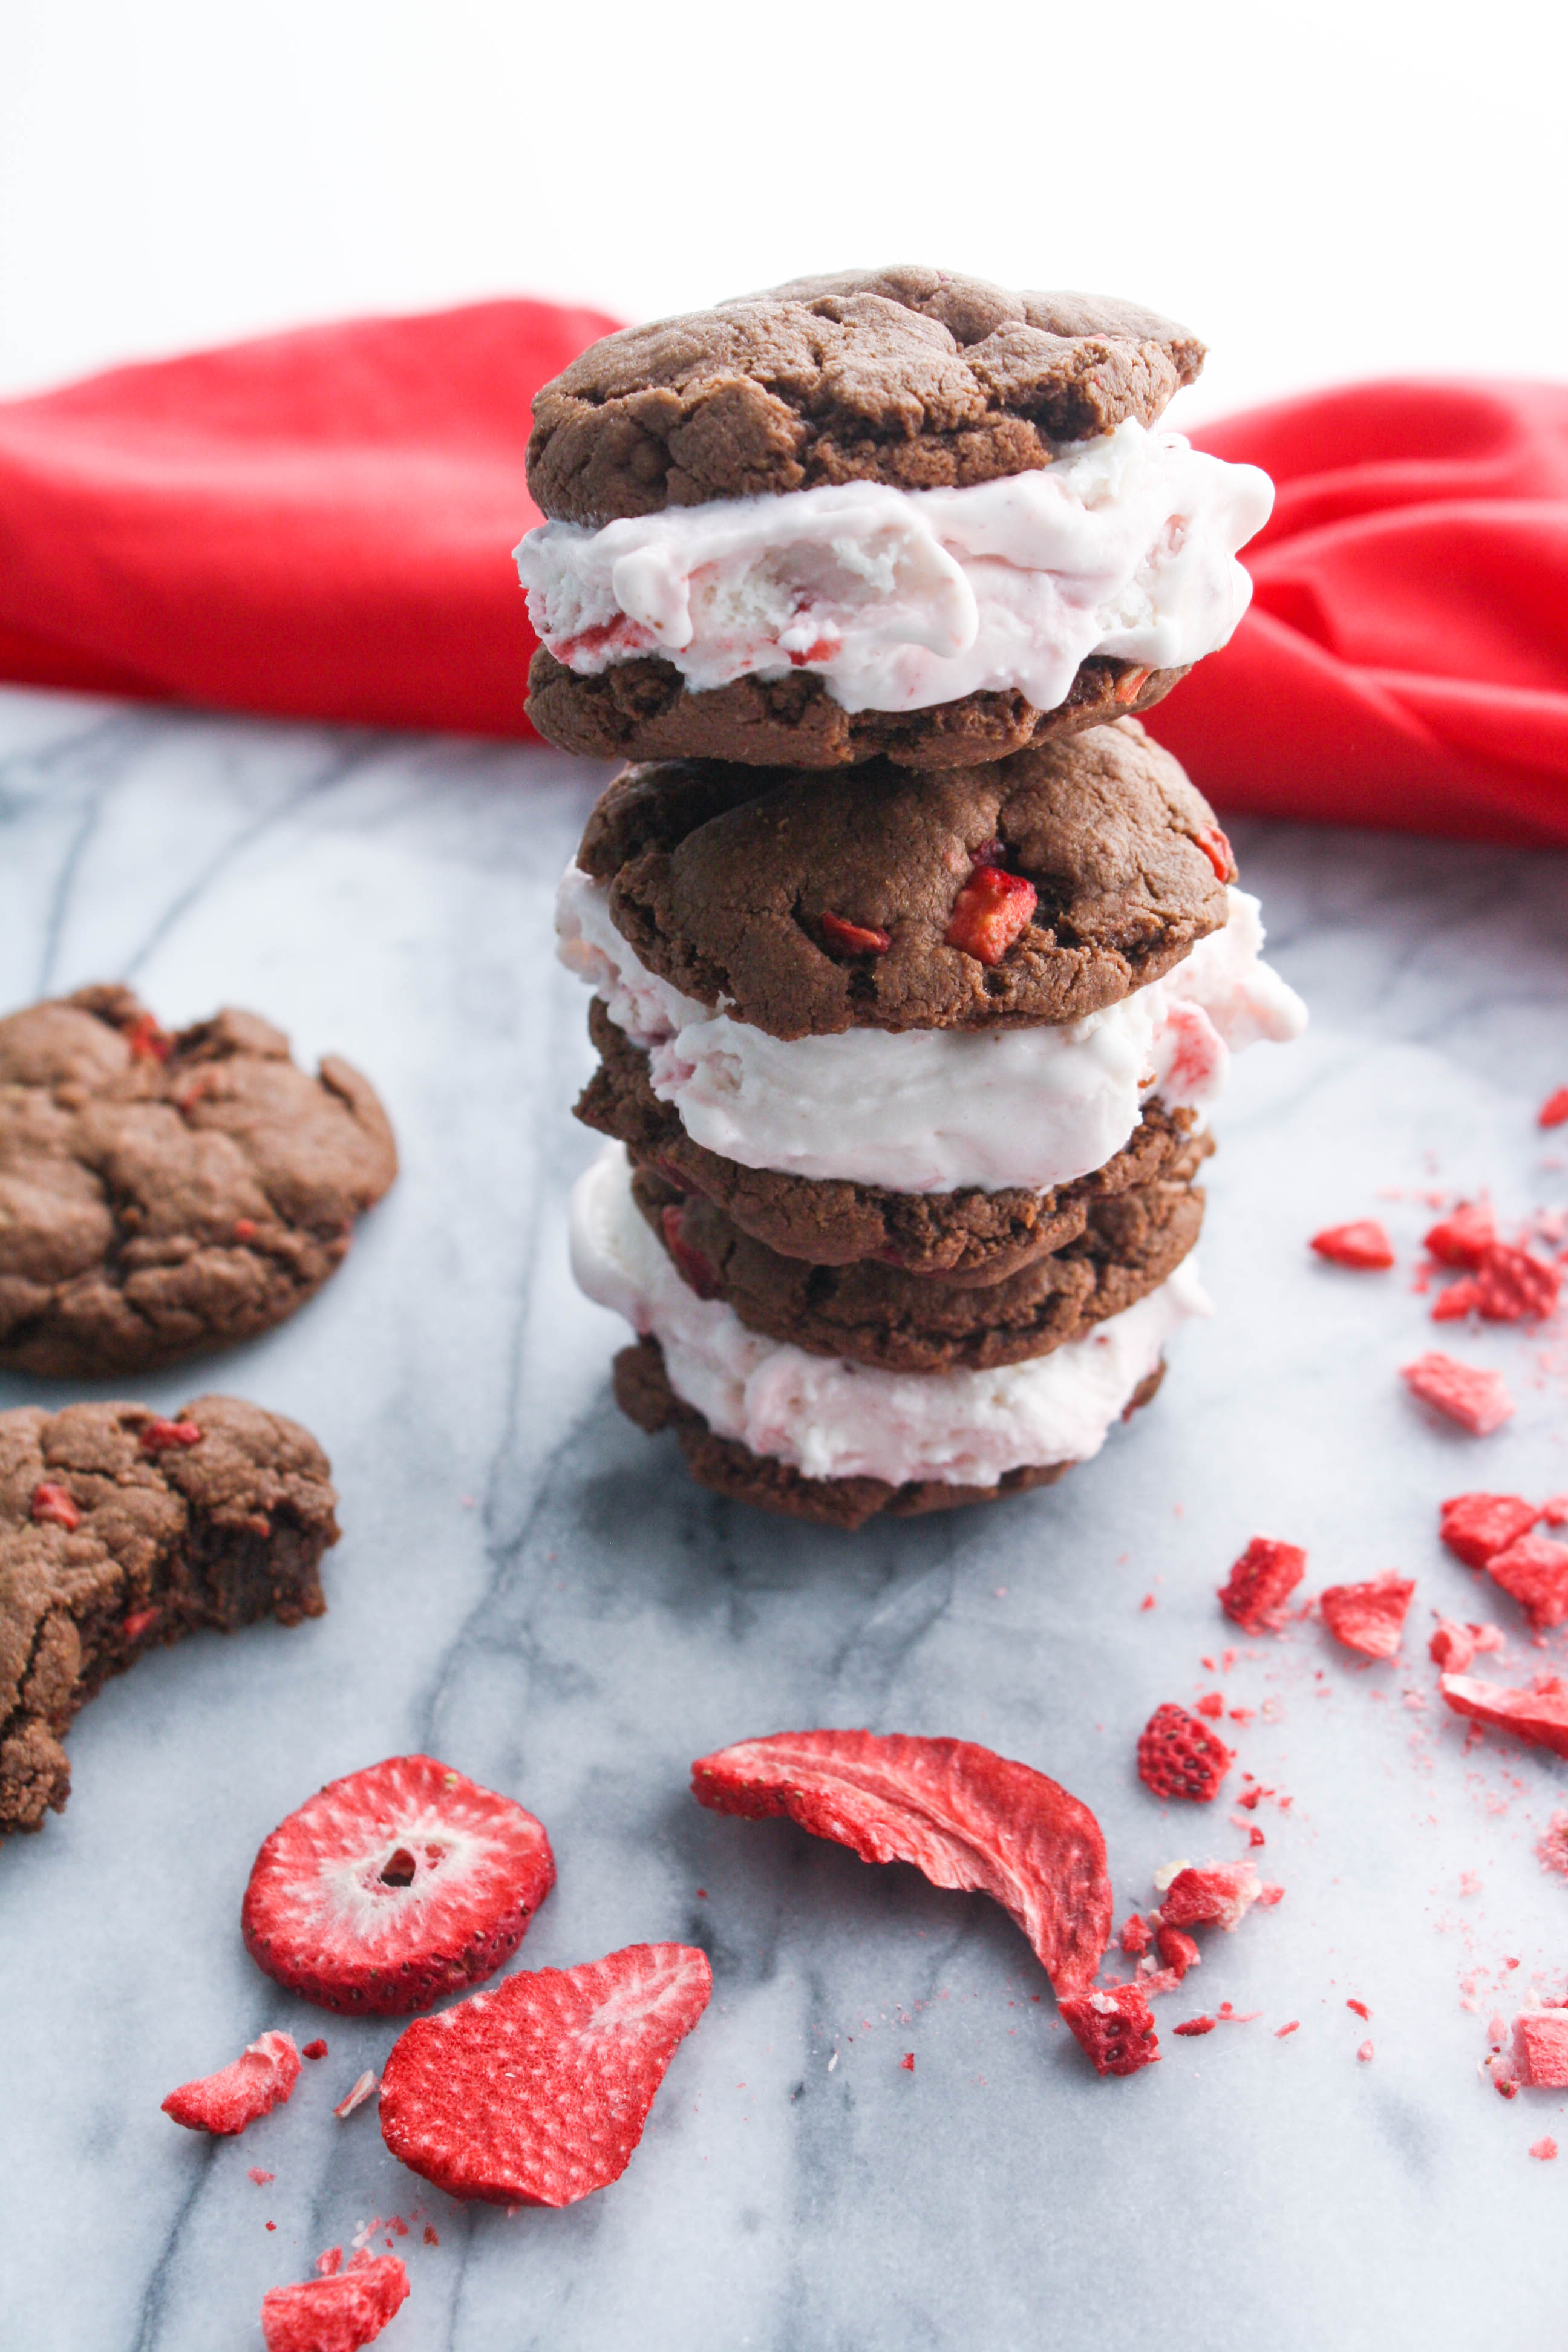 Strawberry-Nutella Cookie Ice Cream Sandwiches make a sweet treat for Valentine's Day! You'll love to serve these strawberry-Nutella cookie ice cream sandwiches to your love for Valentine's Day!